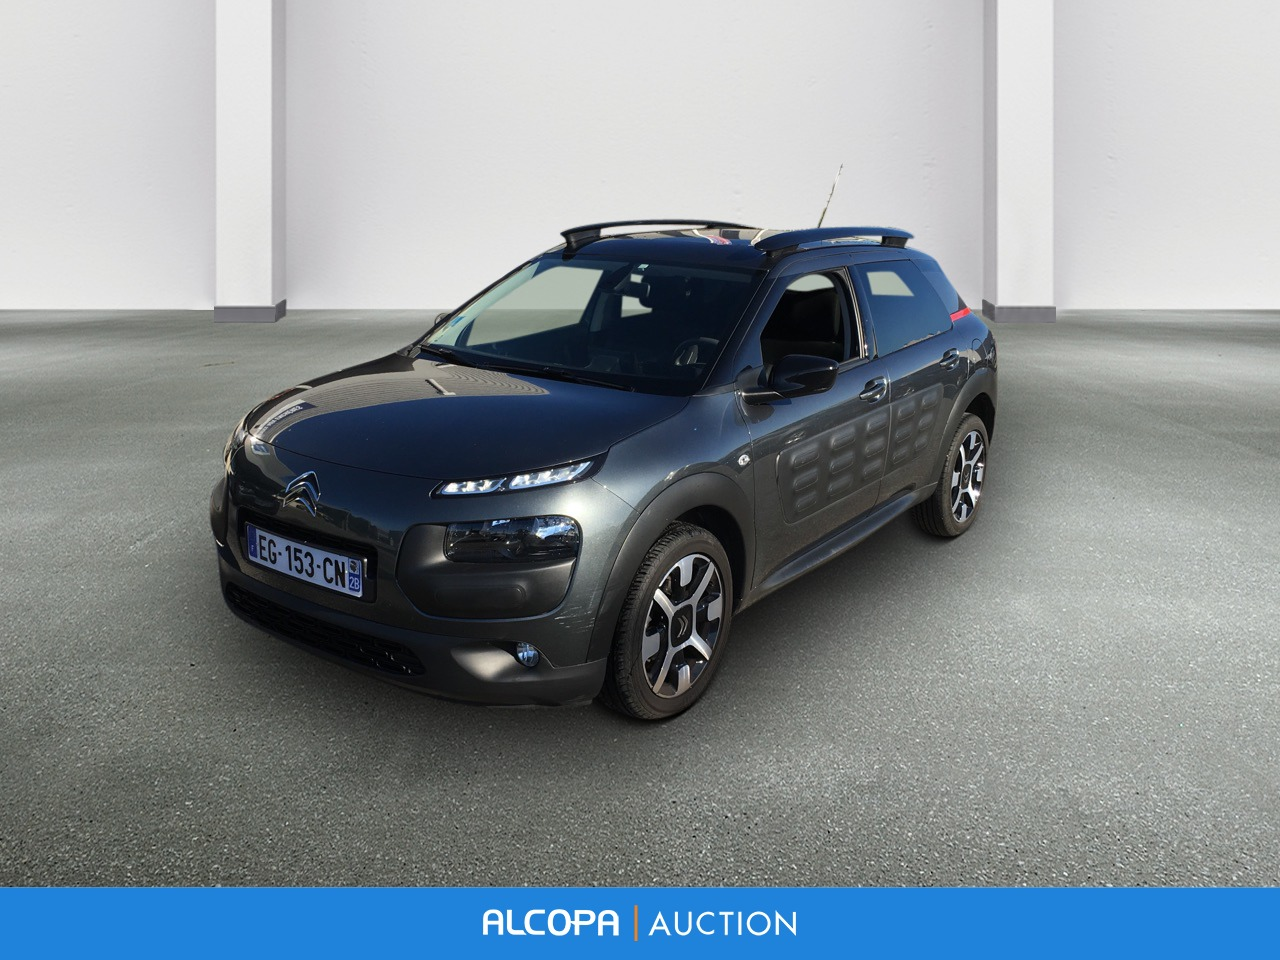 citroen c4 cactus c4 cactus bluehdi 100 s s etg6 alcopa auction. Black Bedroom Furniture Sets. Home Design Ideas